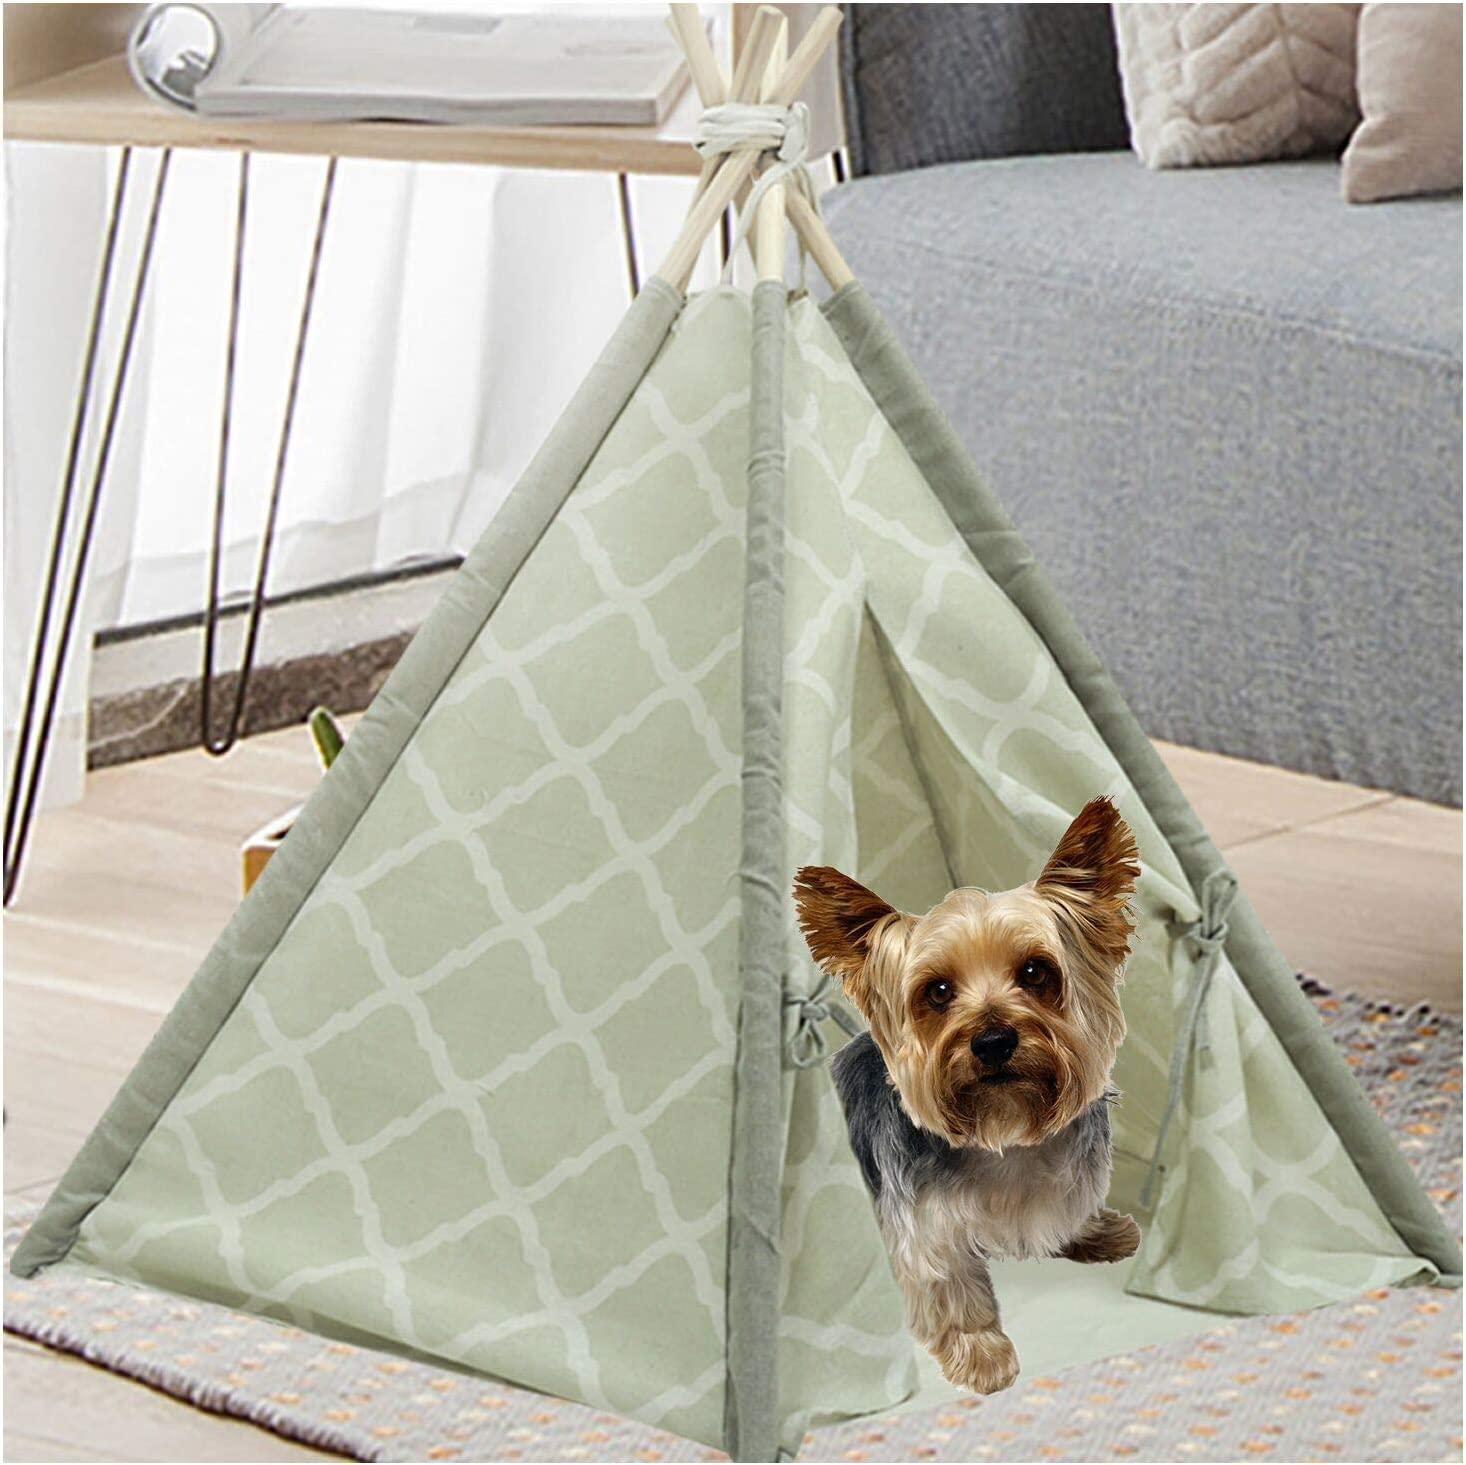 UKadou-Pet-Teepee-for-Dogs-Cats, Portable Pet Tents House, Washable Canvas Pet Teepee Dog Cat Bed with Mat 24in Style